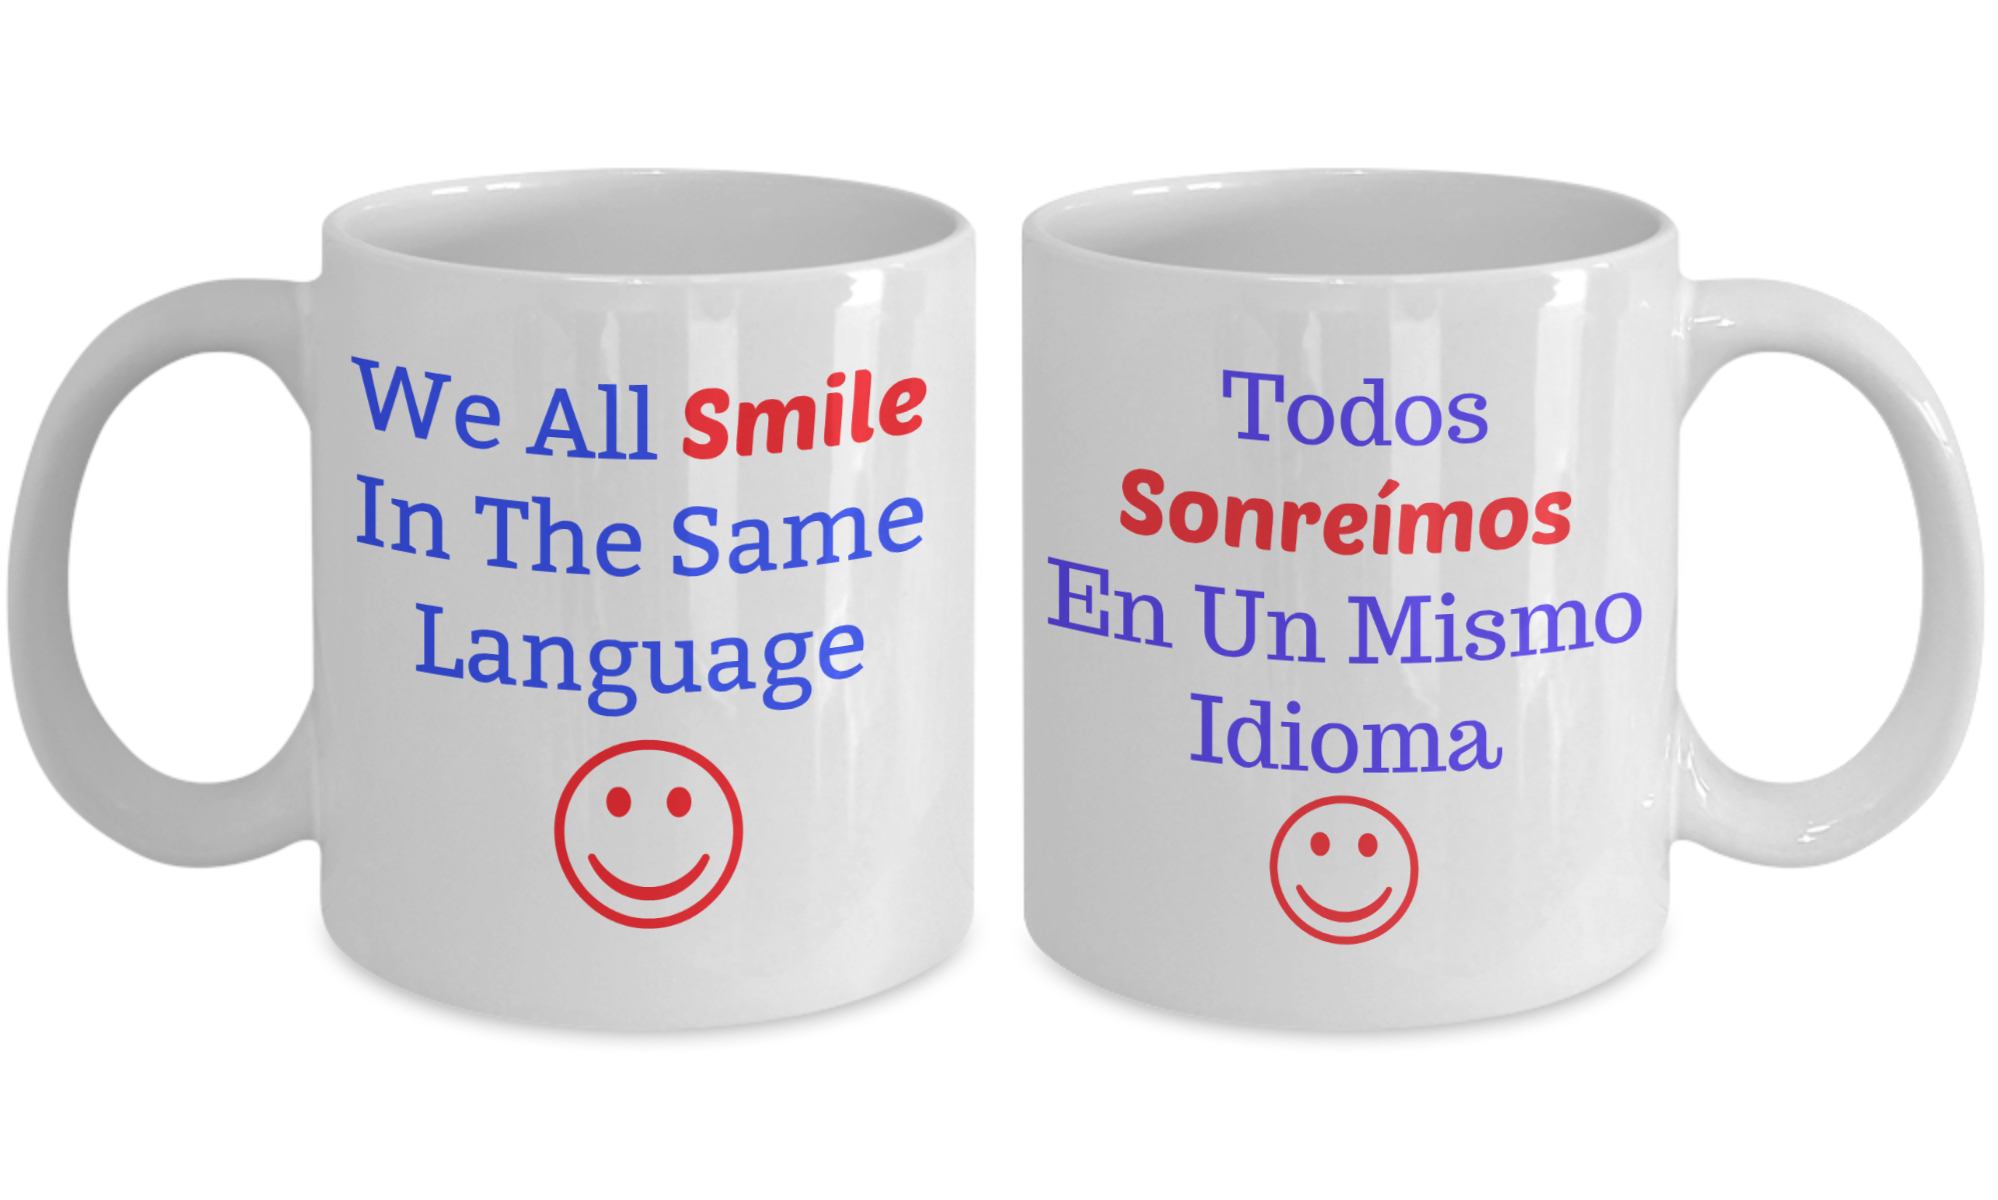 """We all smile in the same language"" bilingual mug"